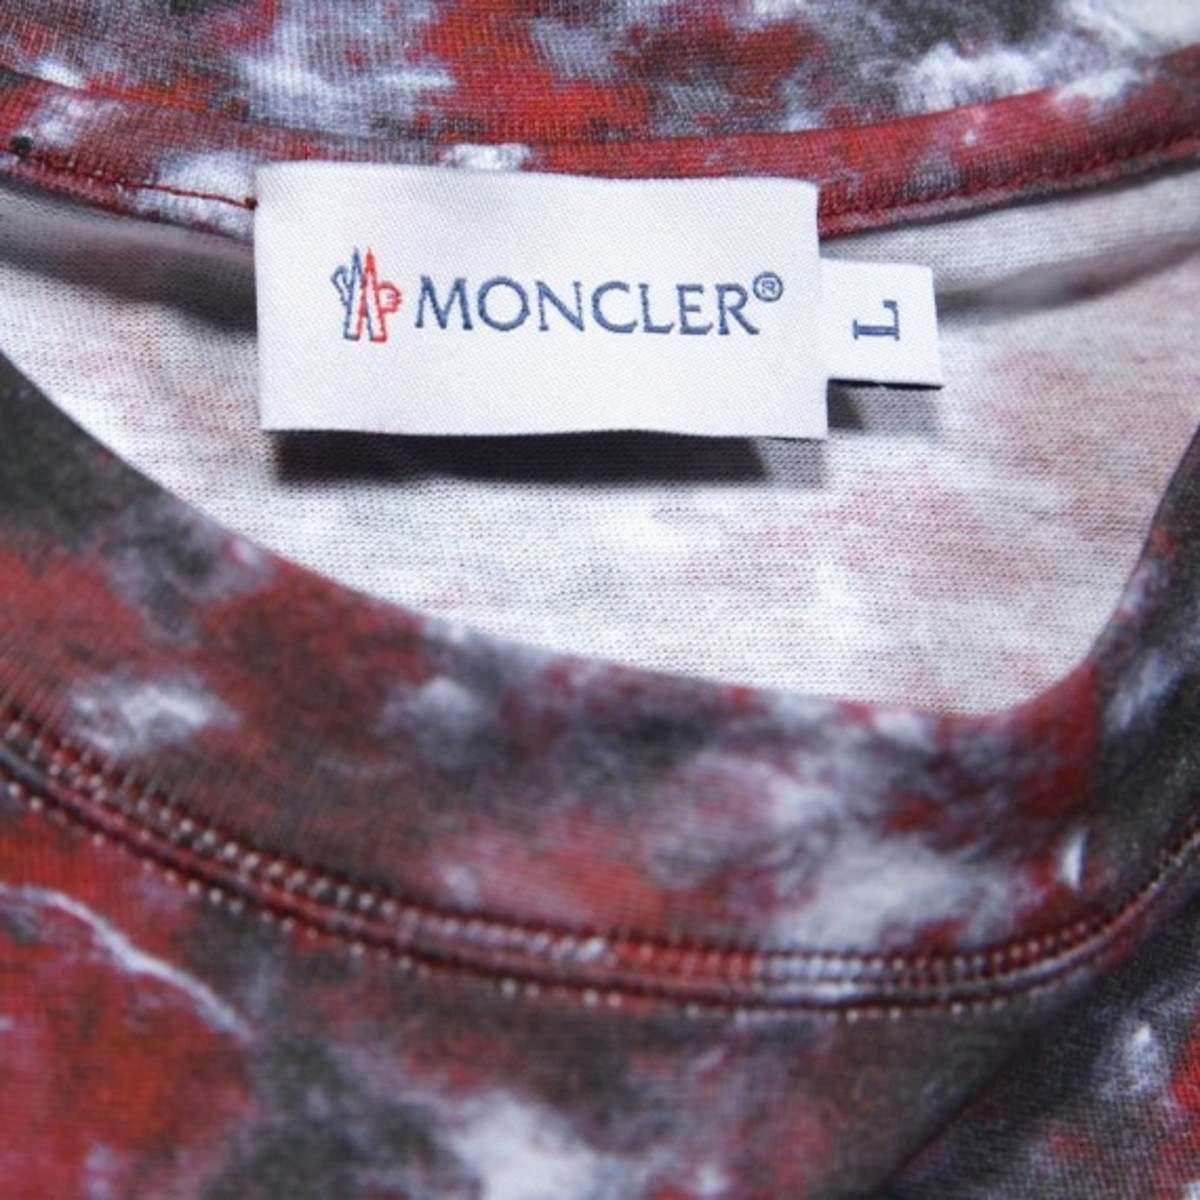 moncler-r-collection-18